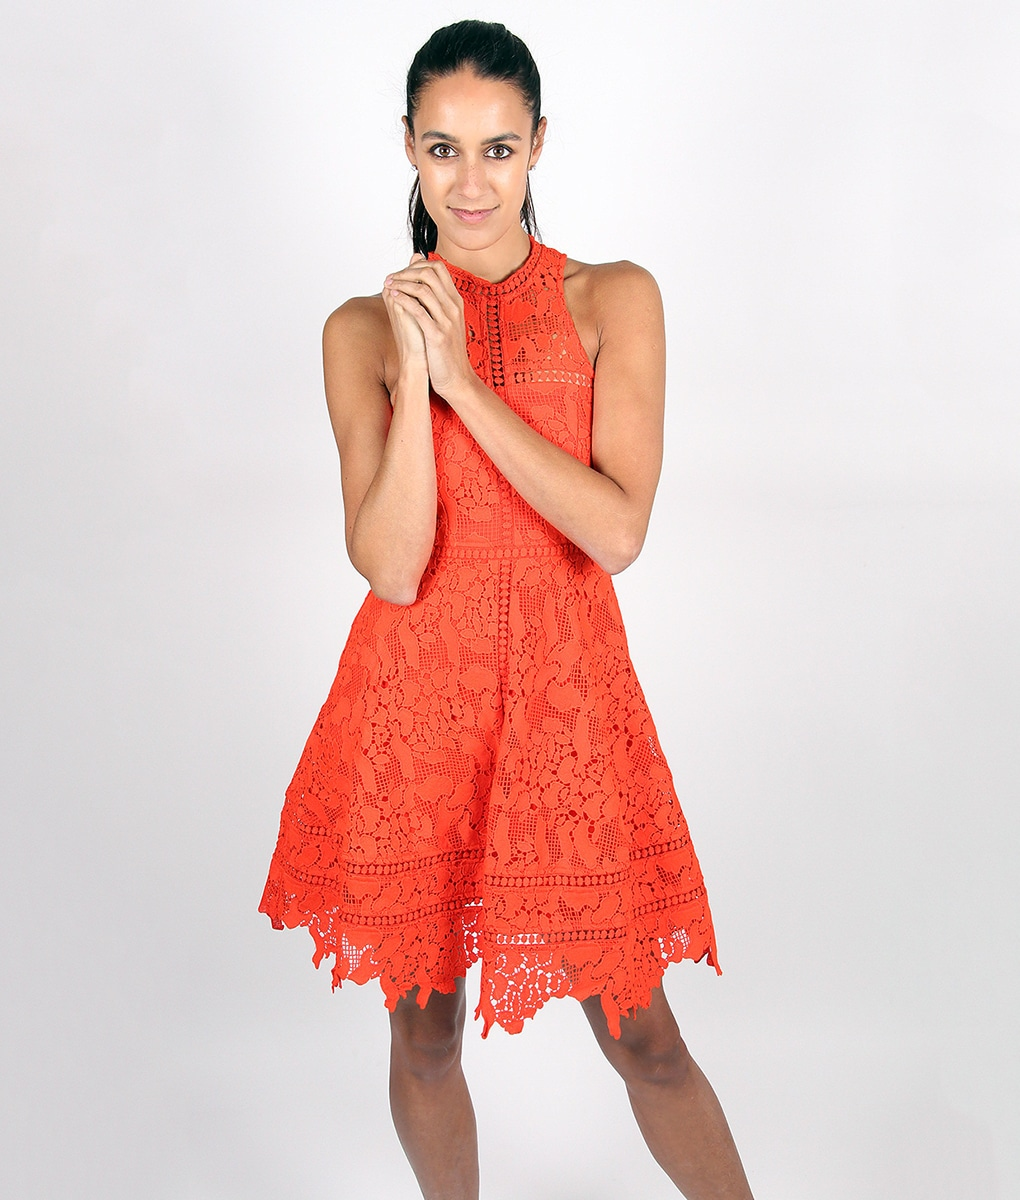 Alila-Tomatoe-Red-Lace-Crochet-Dress-by-Lumier-by-Bariano